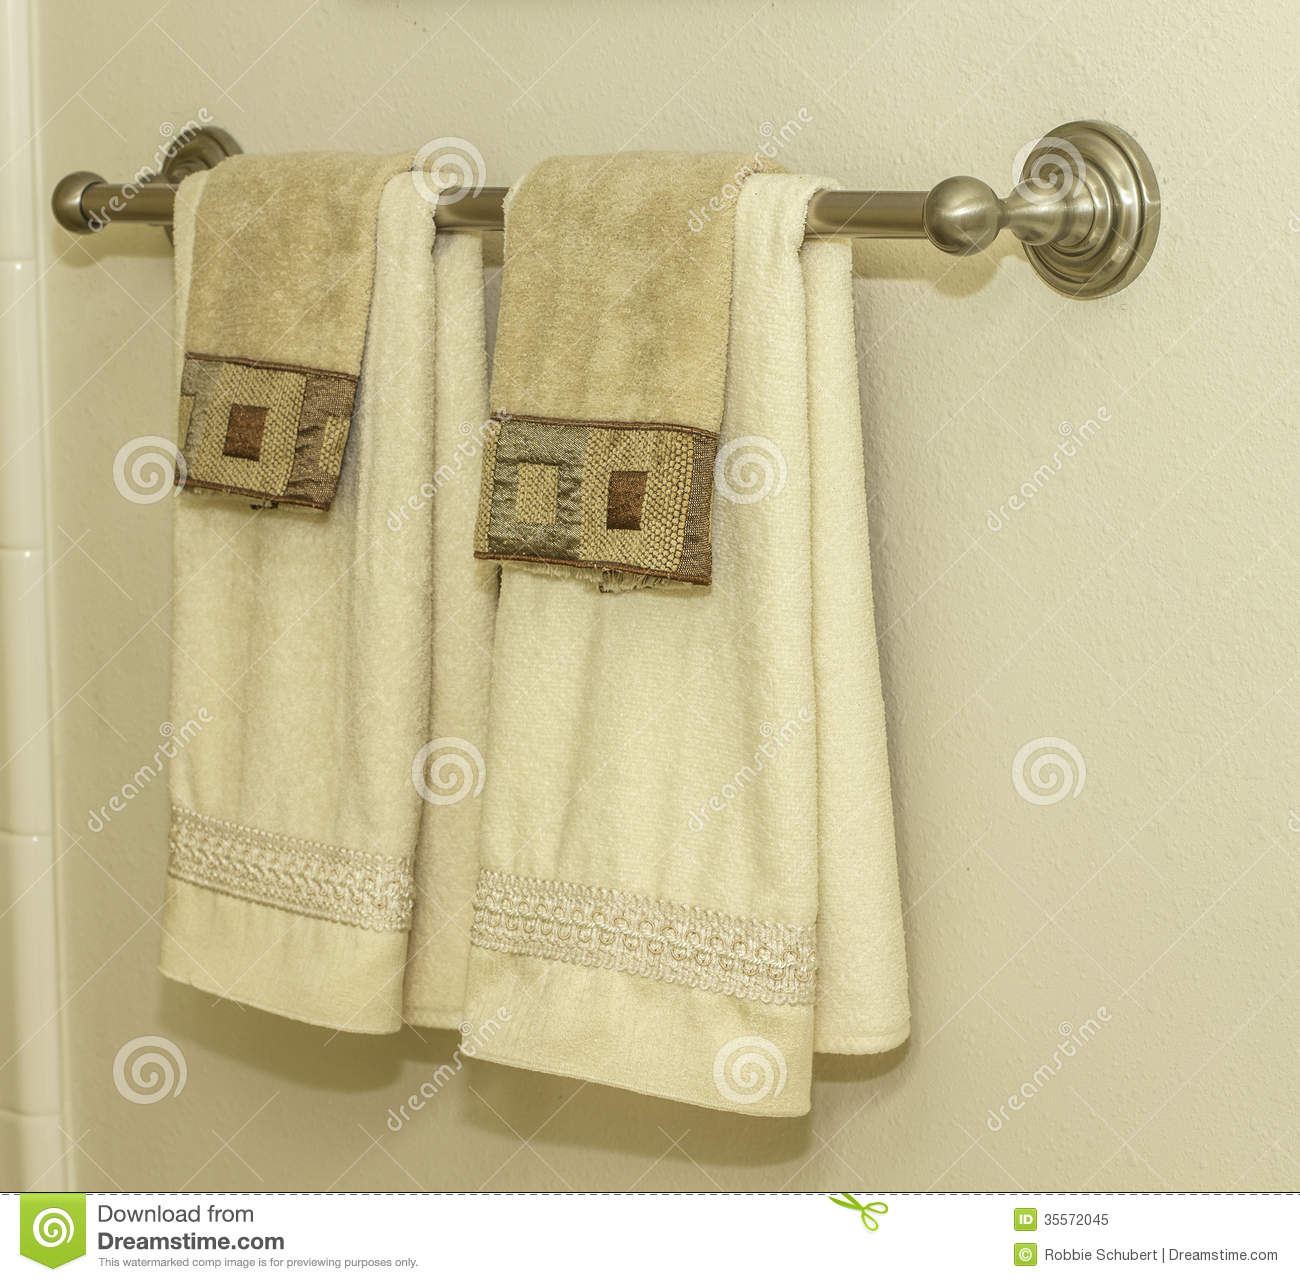 Bathroom towel rack stock image image of fixture for Bathroom pictures to hang on wall